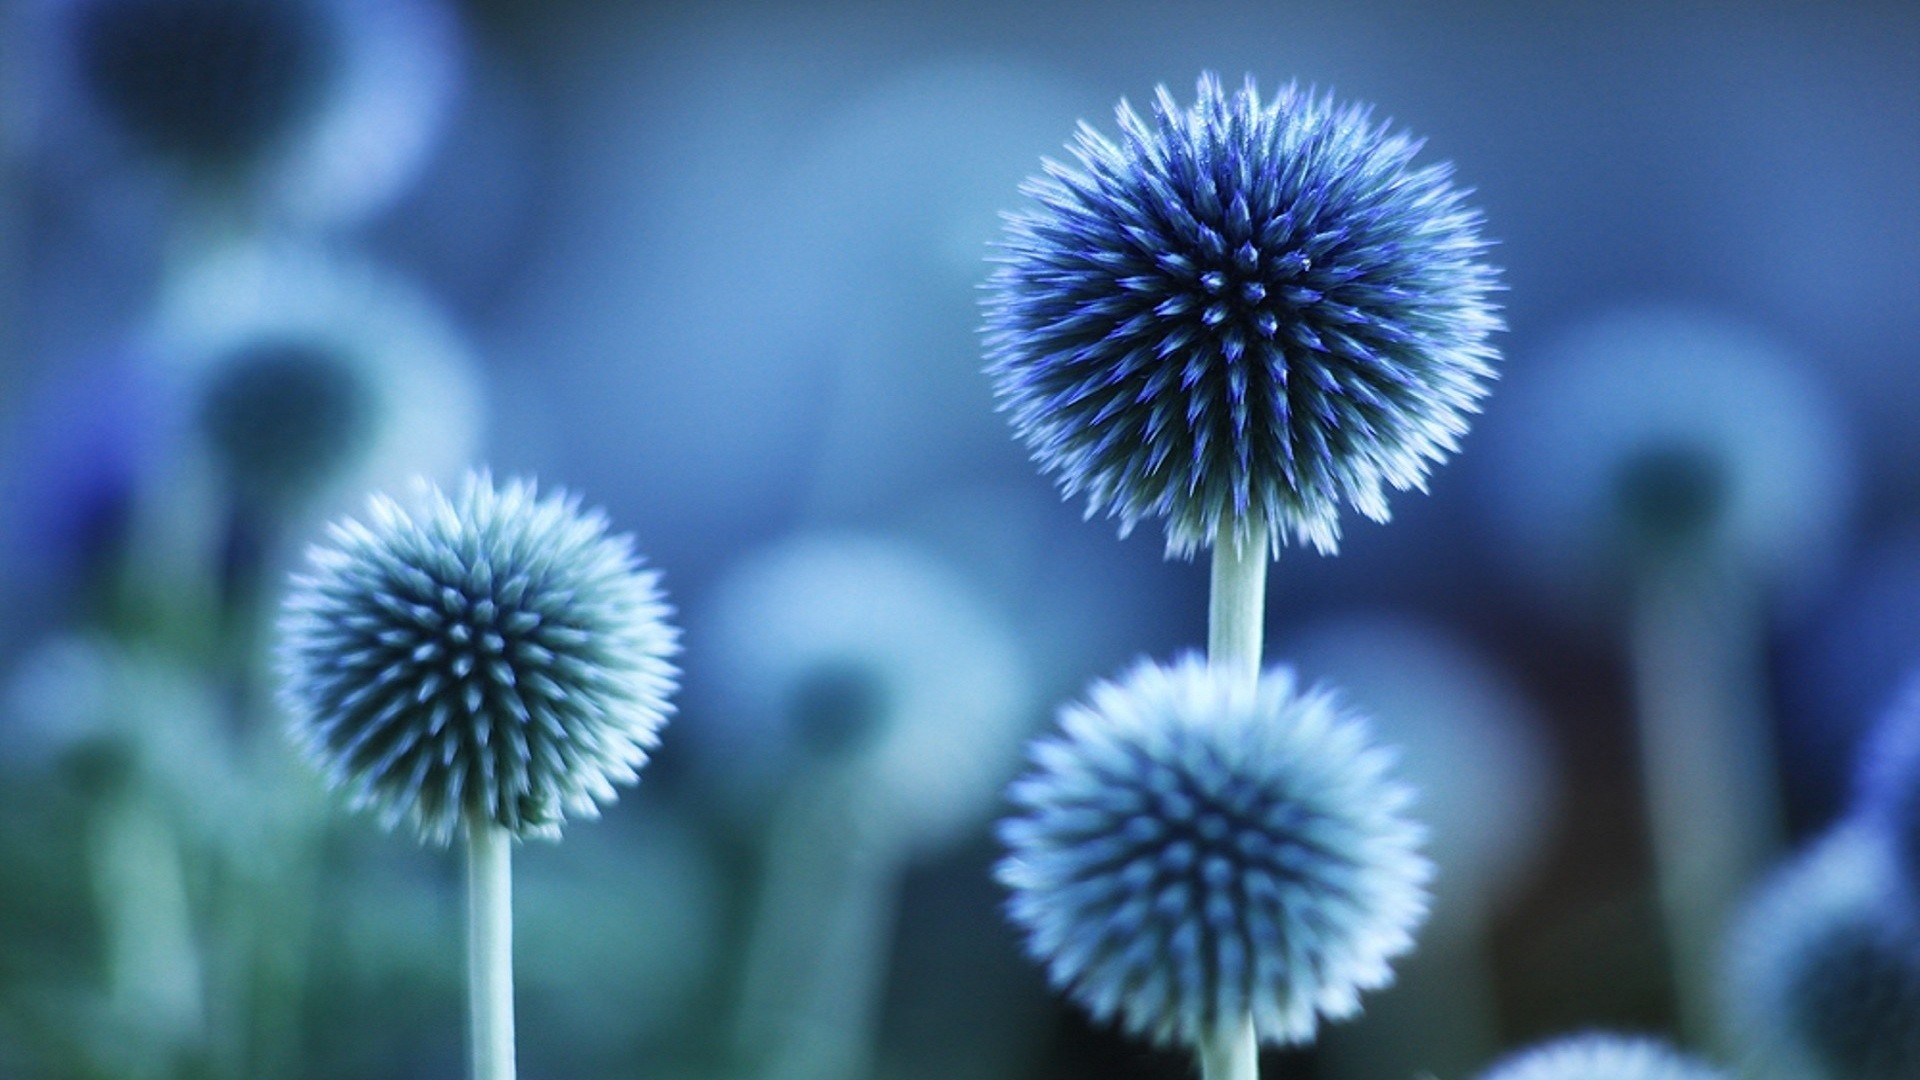 Res: 1920x1080, Blue Flower HD Background. Previous Wallpaper